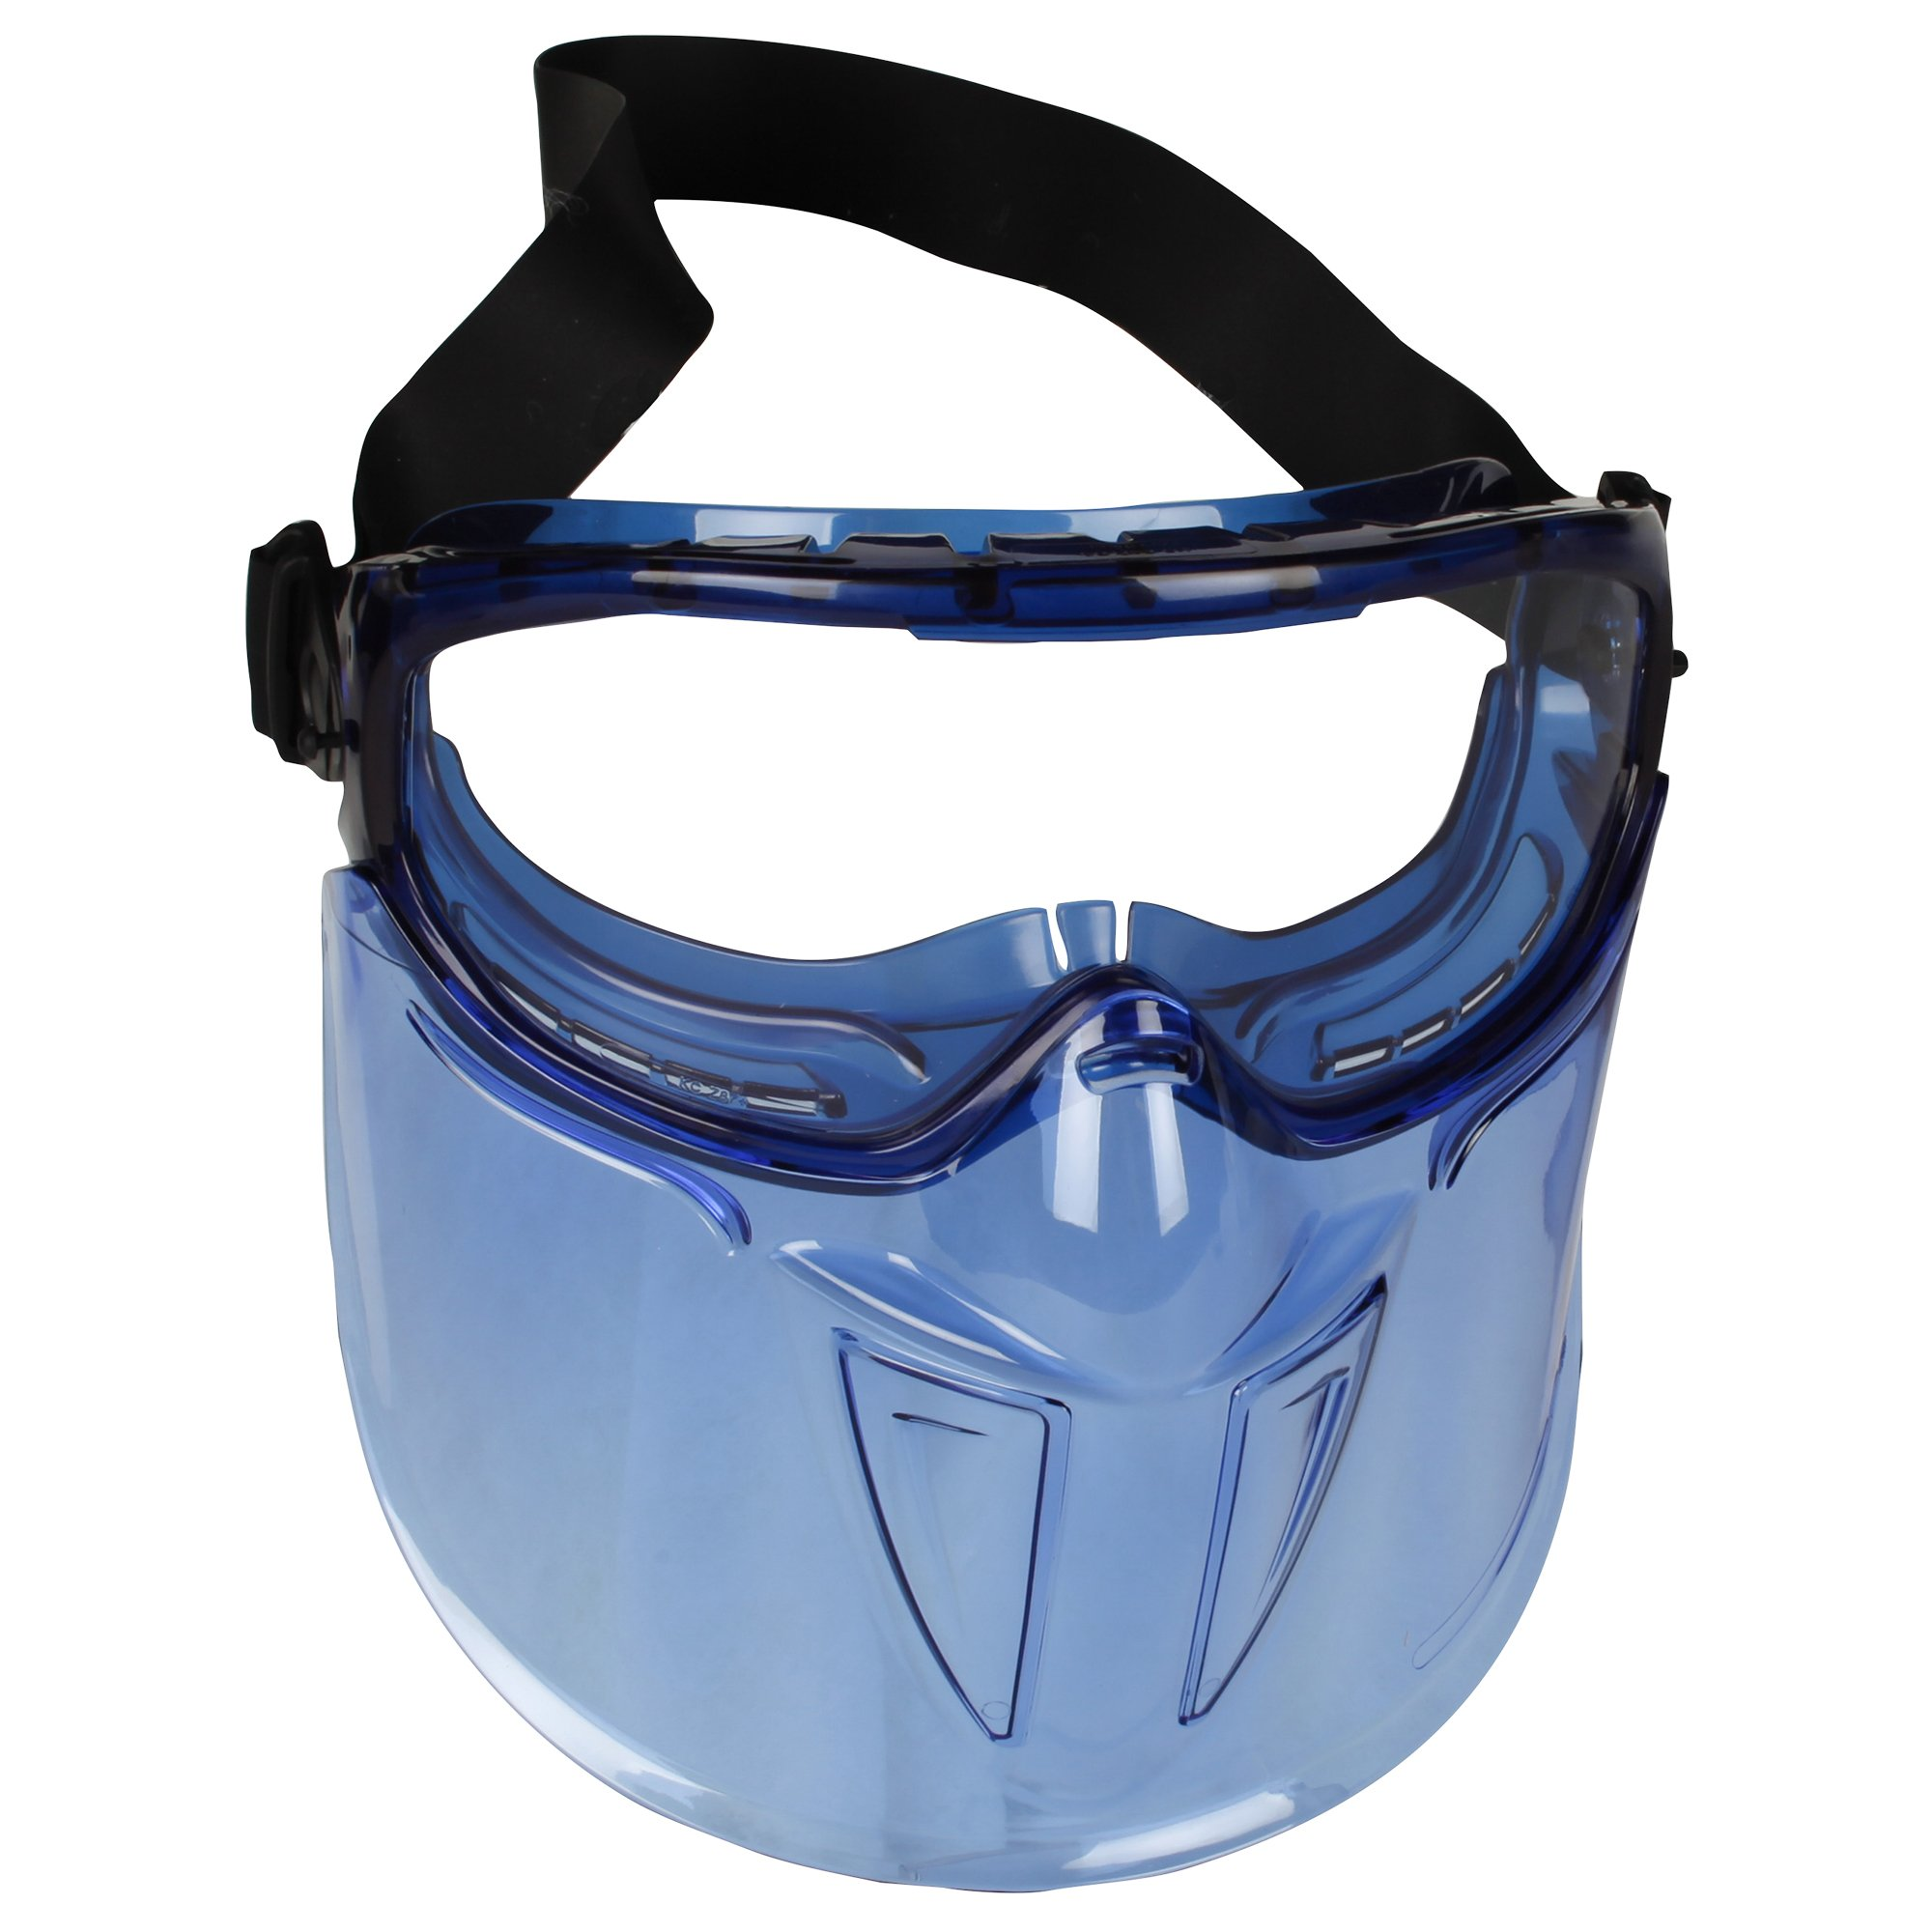 KLEENGUARD V90 ''The Shield'' Safety Goggles with Face Shield (18629), Clear Anti-Fog Lens with Blue Frame, 6 Pairs / Package by KLEENGUARD